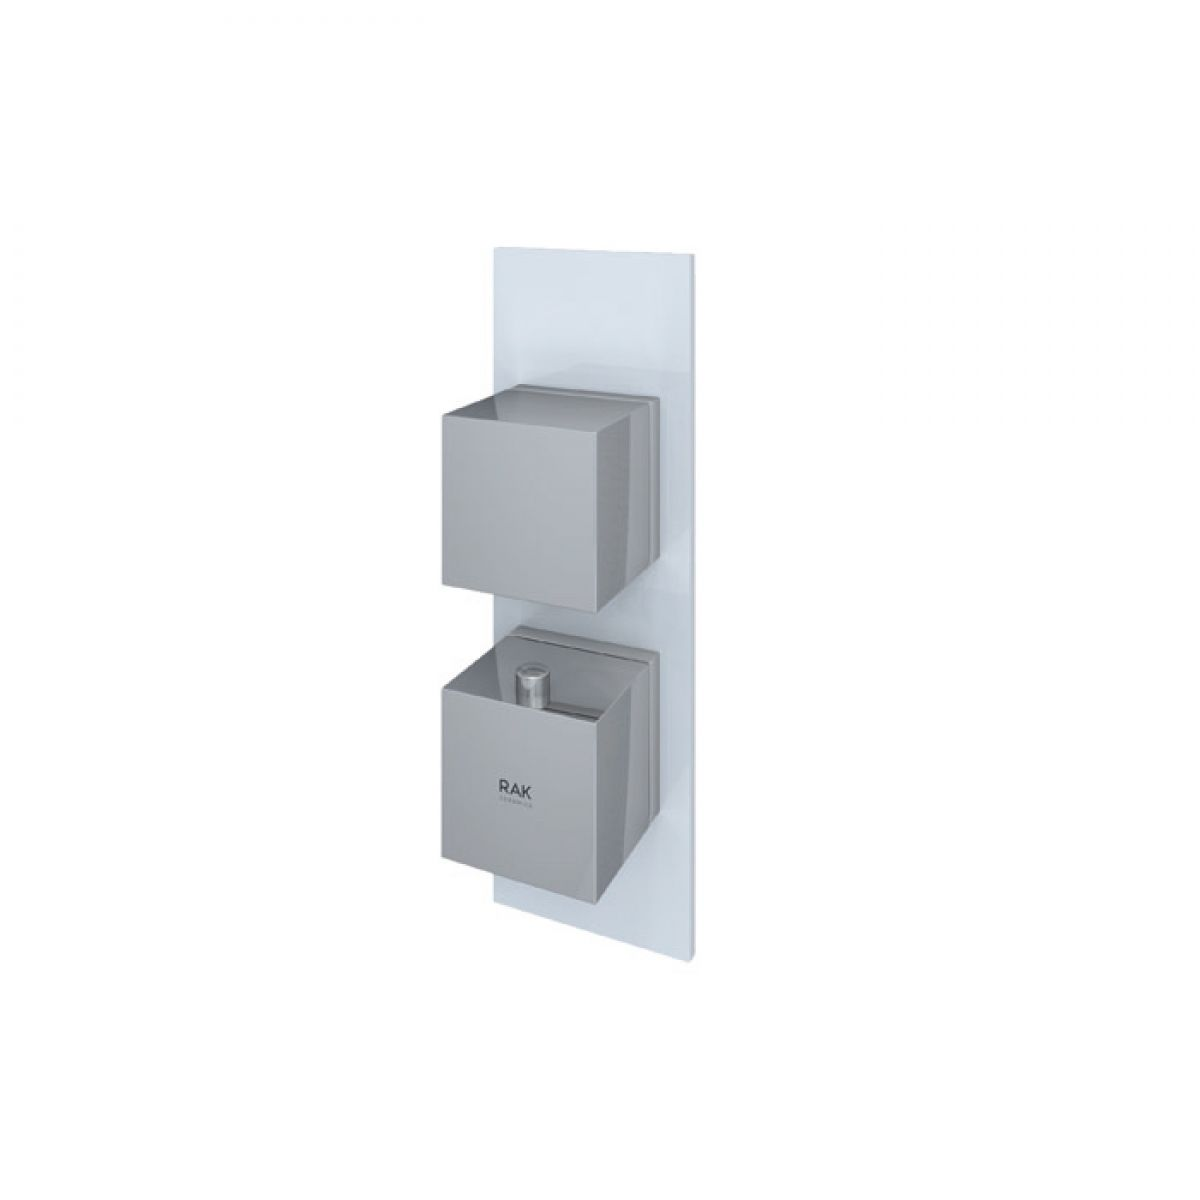 RAK Feeling White Square Single Outlet Thermostatic Shower Valve